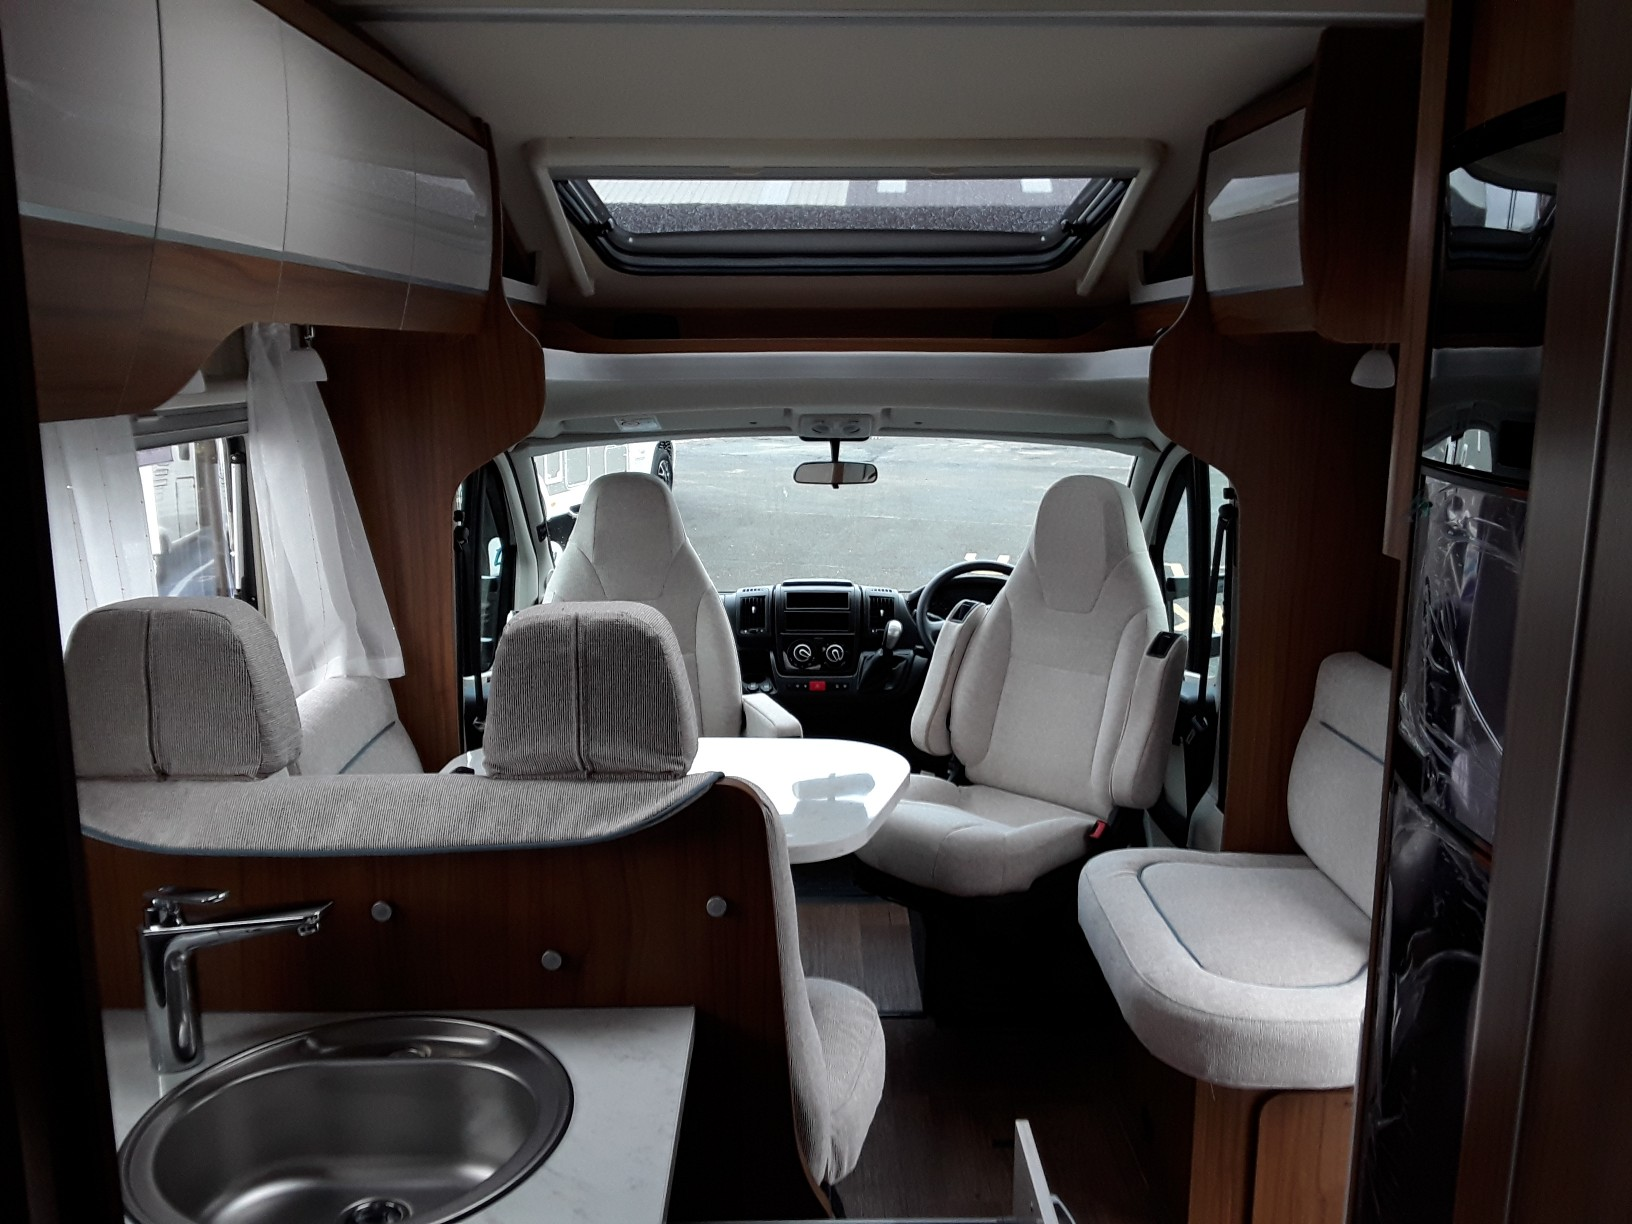 Fiat Ducato Hymer T698 Cl Donaghey Motorhomes